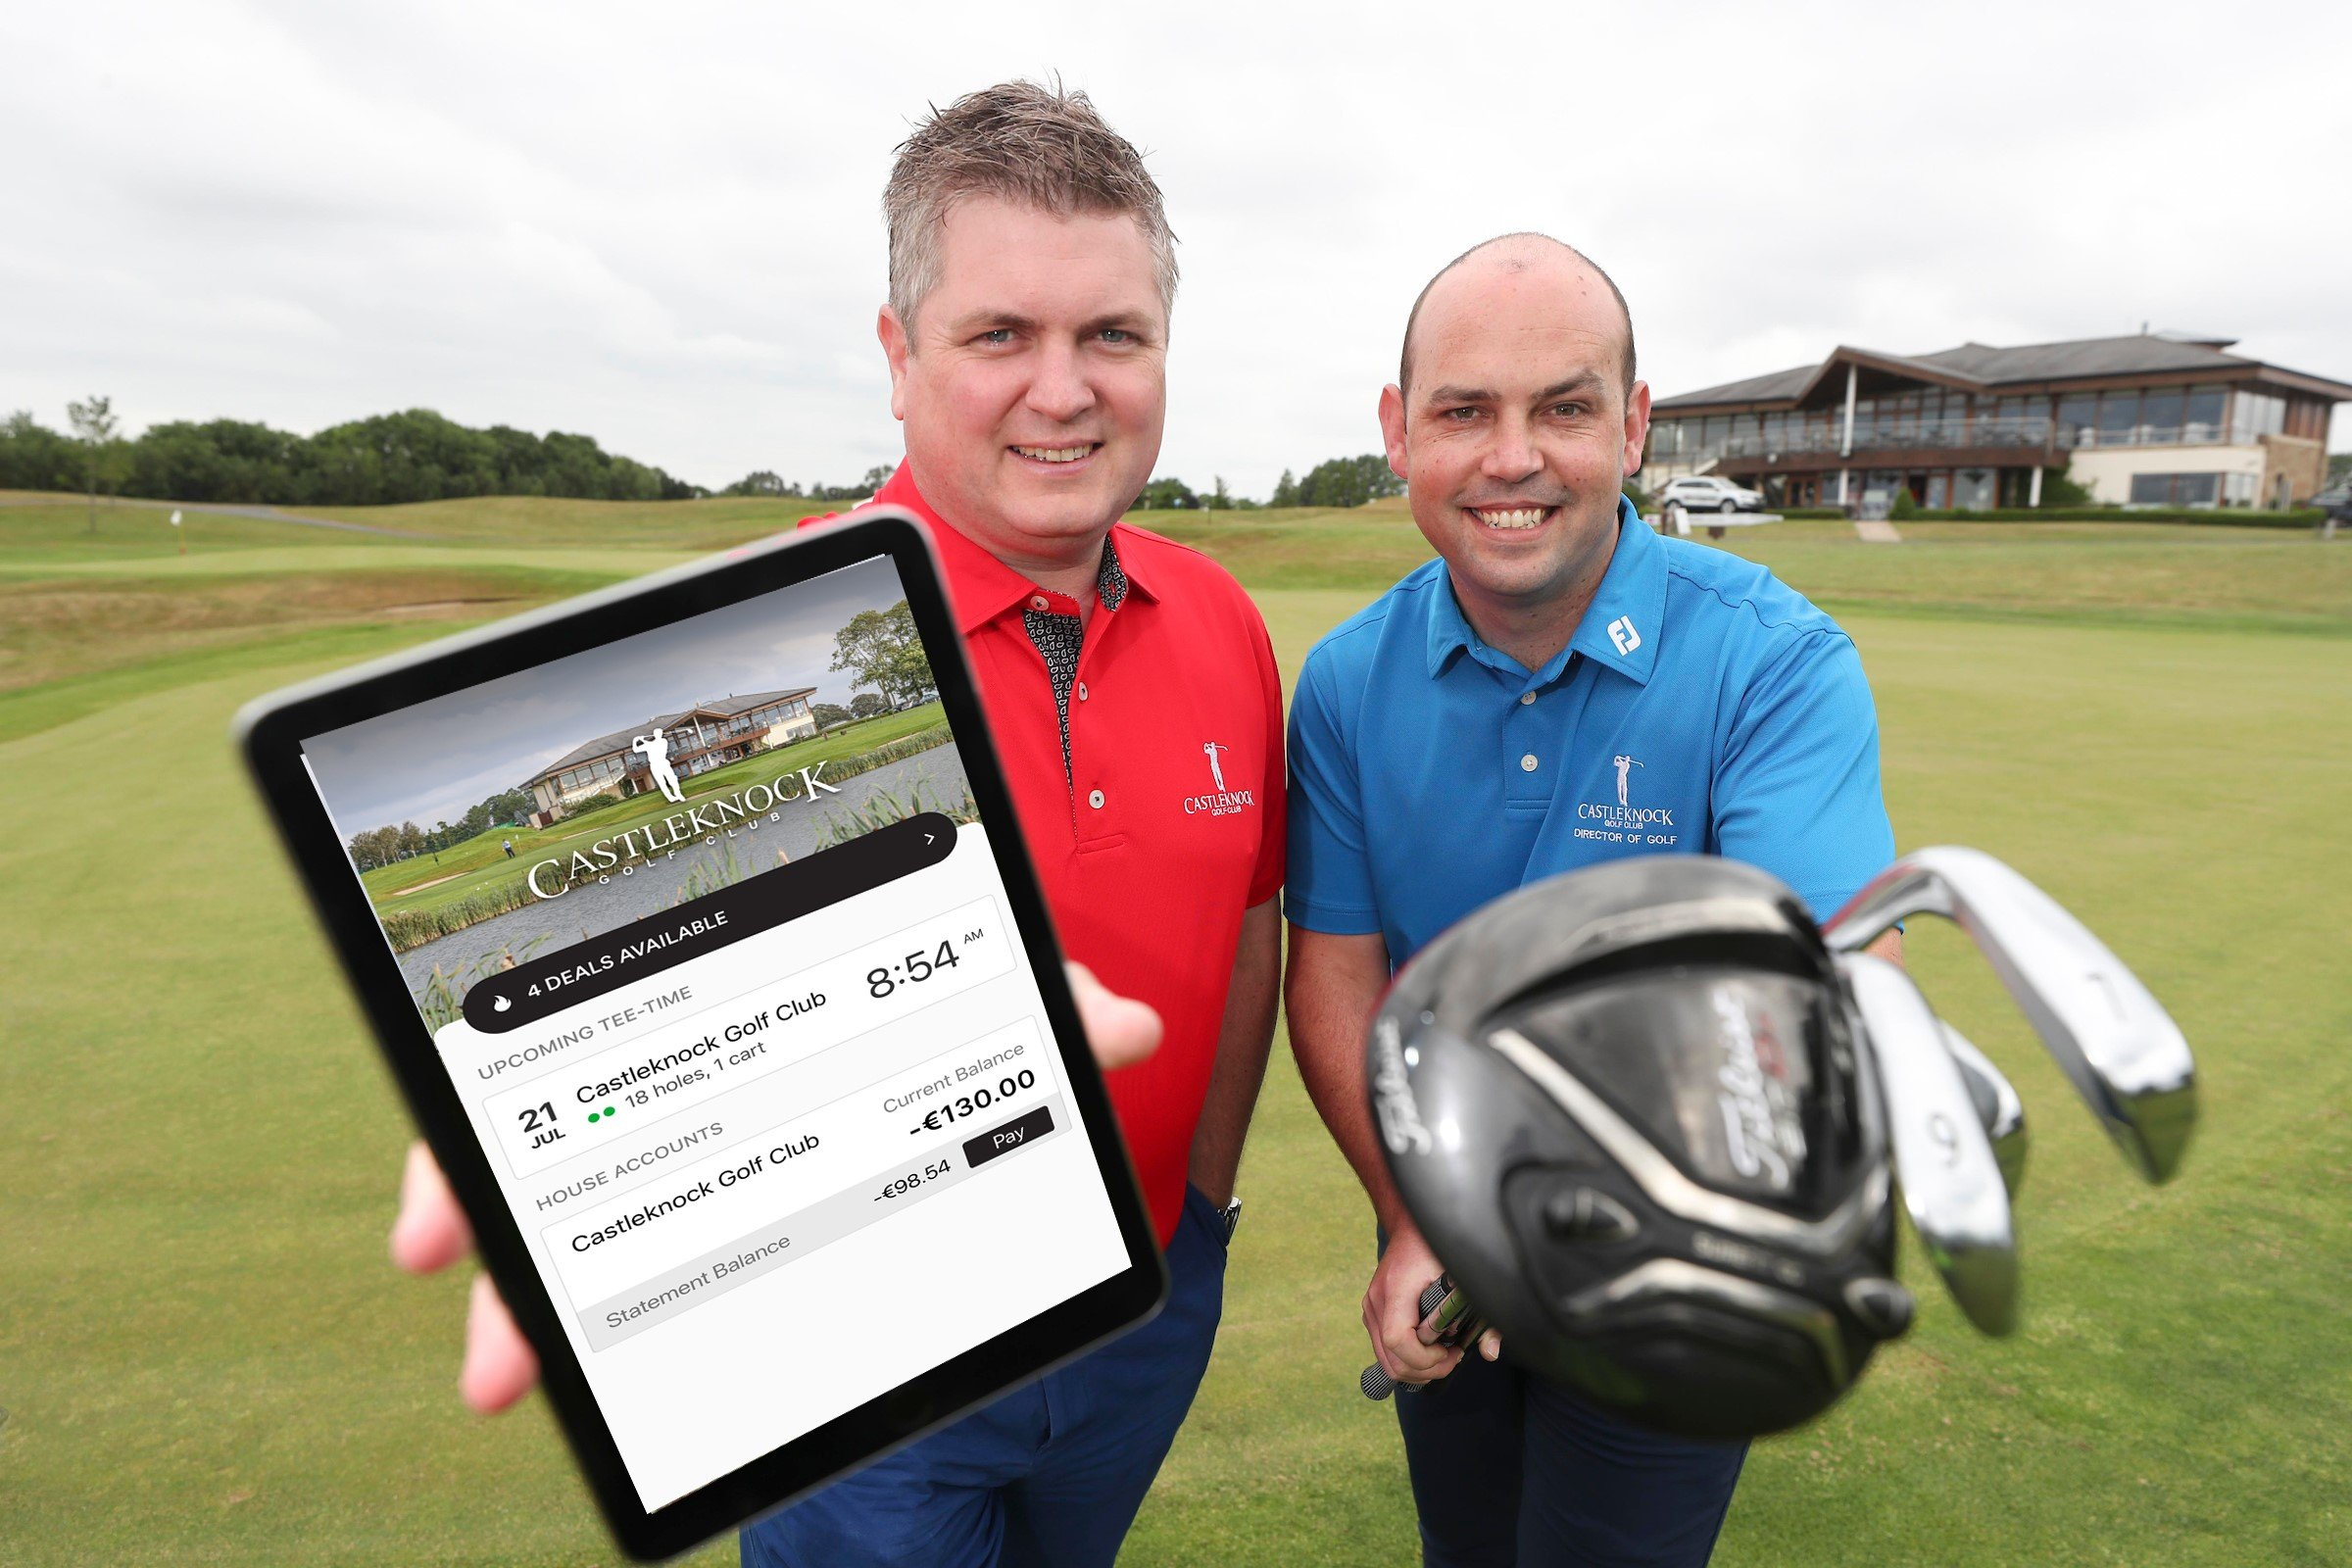 Ed Pettit, Carr Golf and Ryan Donagher, Castleknock Golf Club at the launch of Carr Golf's new golf management system